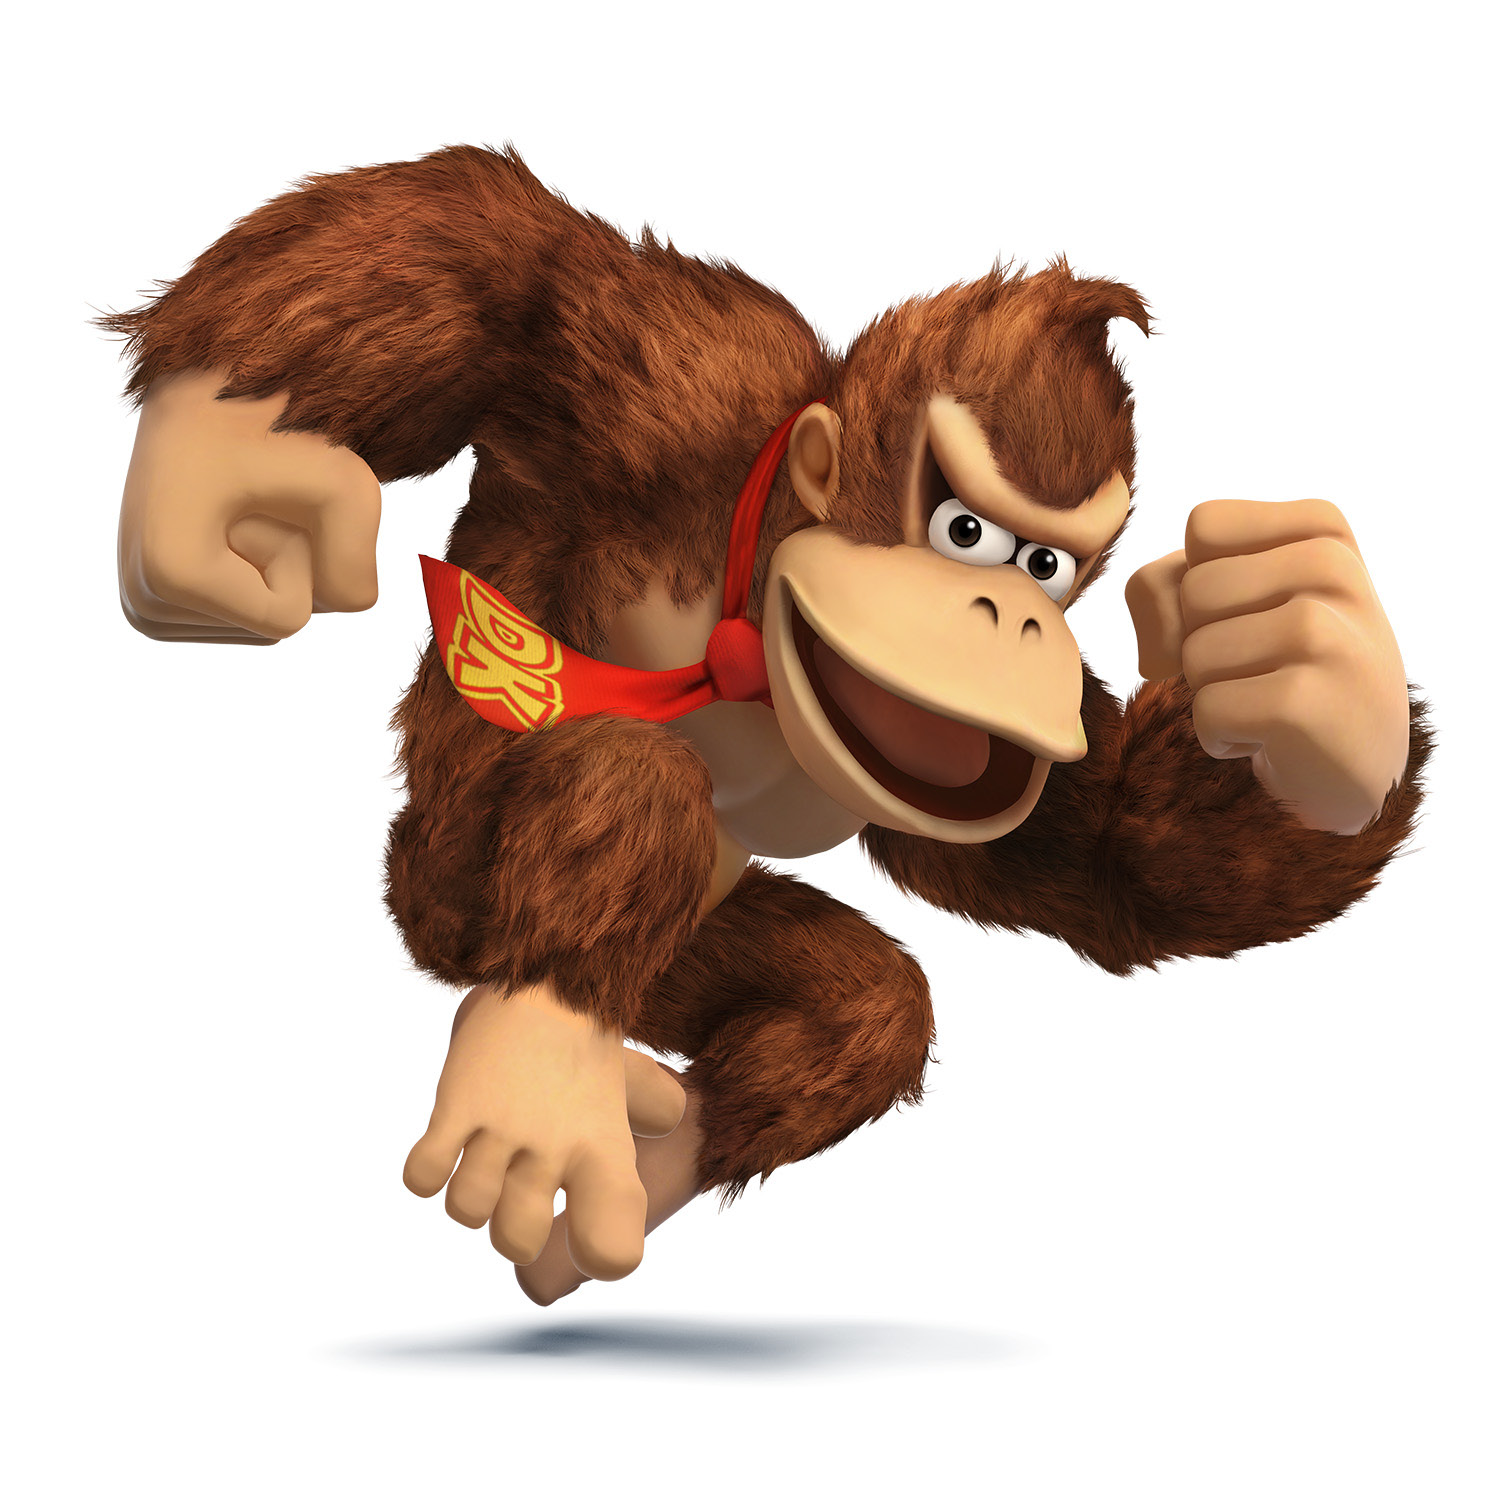 Donkey Kong (Super Smash Bros. for Nintendo 3DS and Wii U)